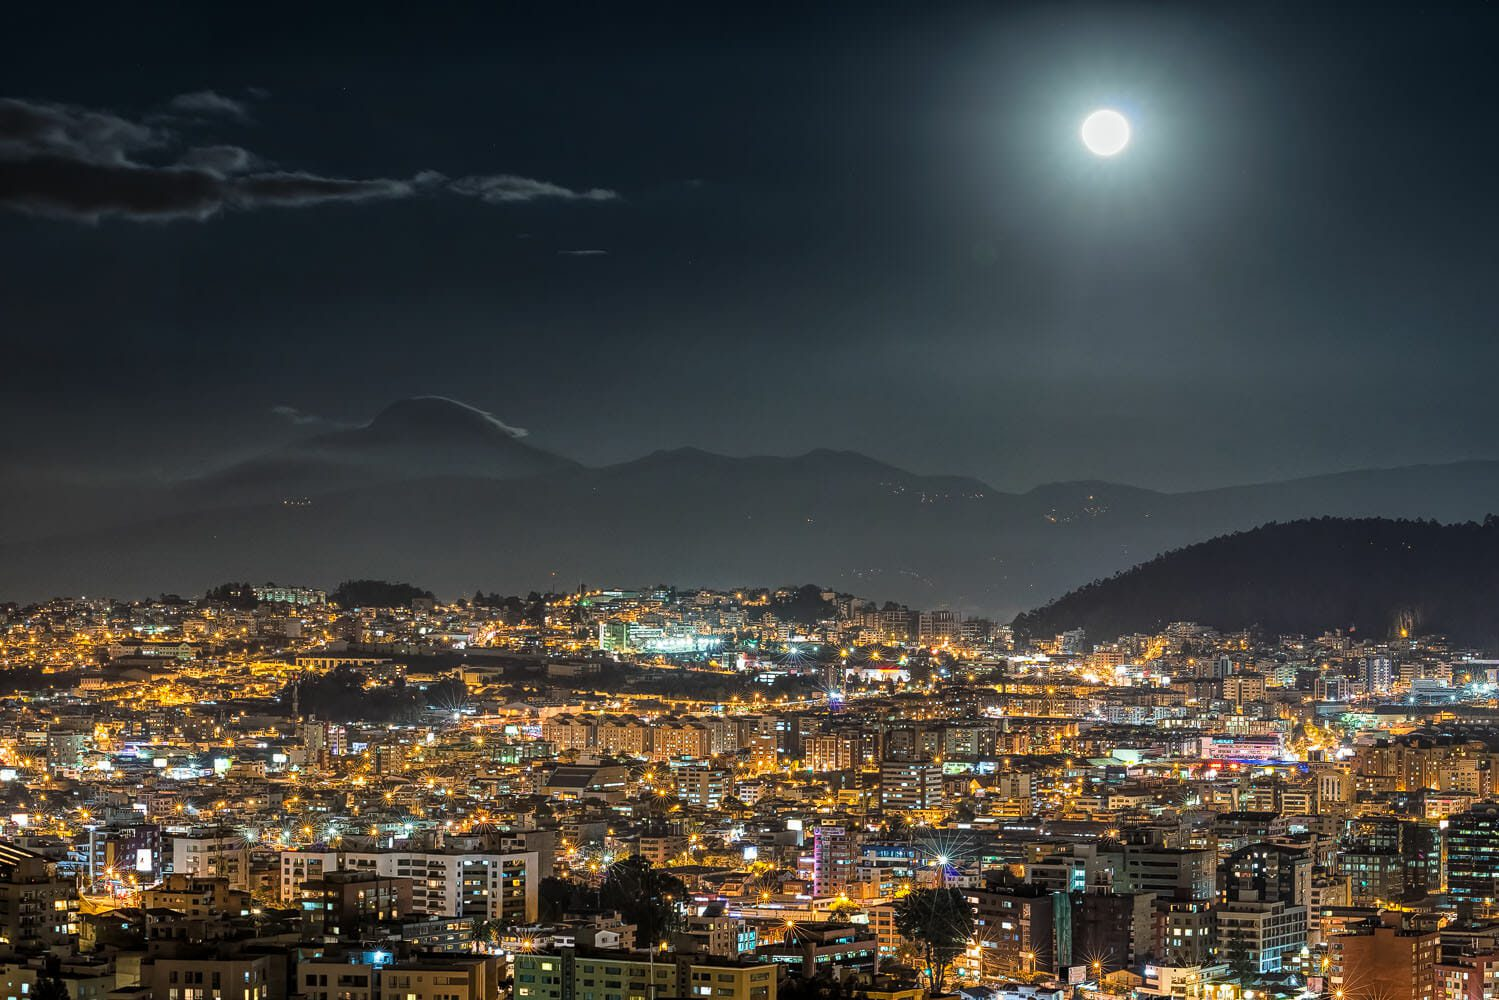 The full moon lights up the Cayambe volcano and north of Quito